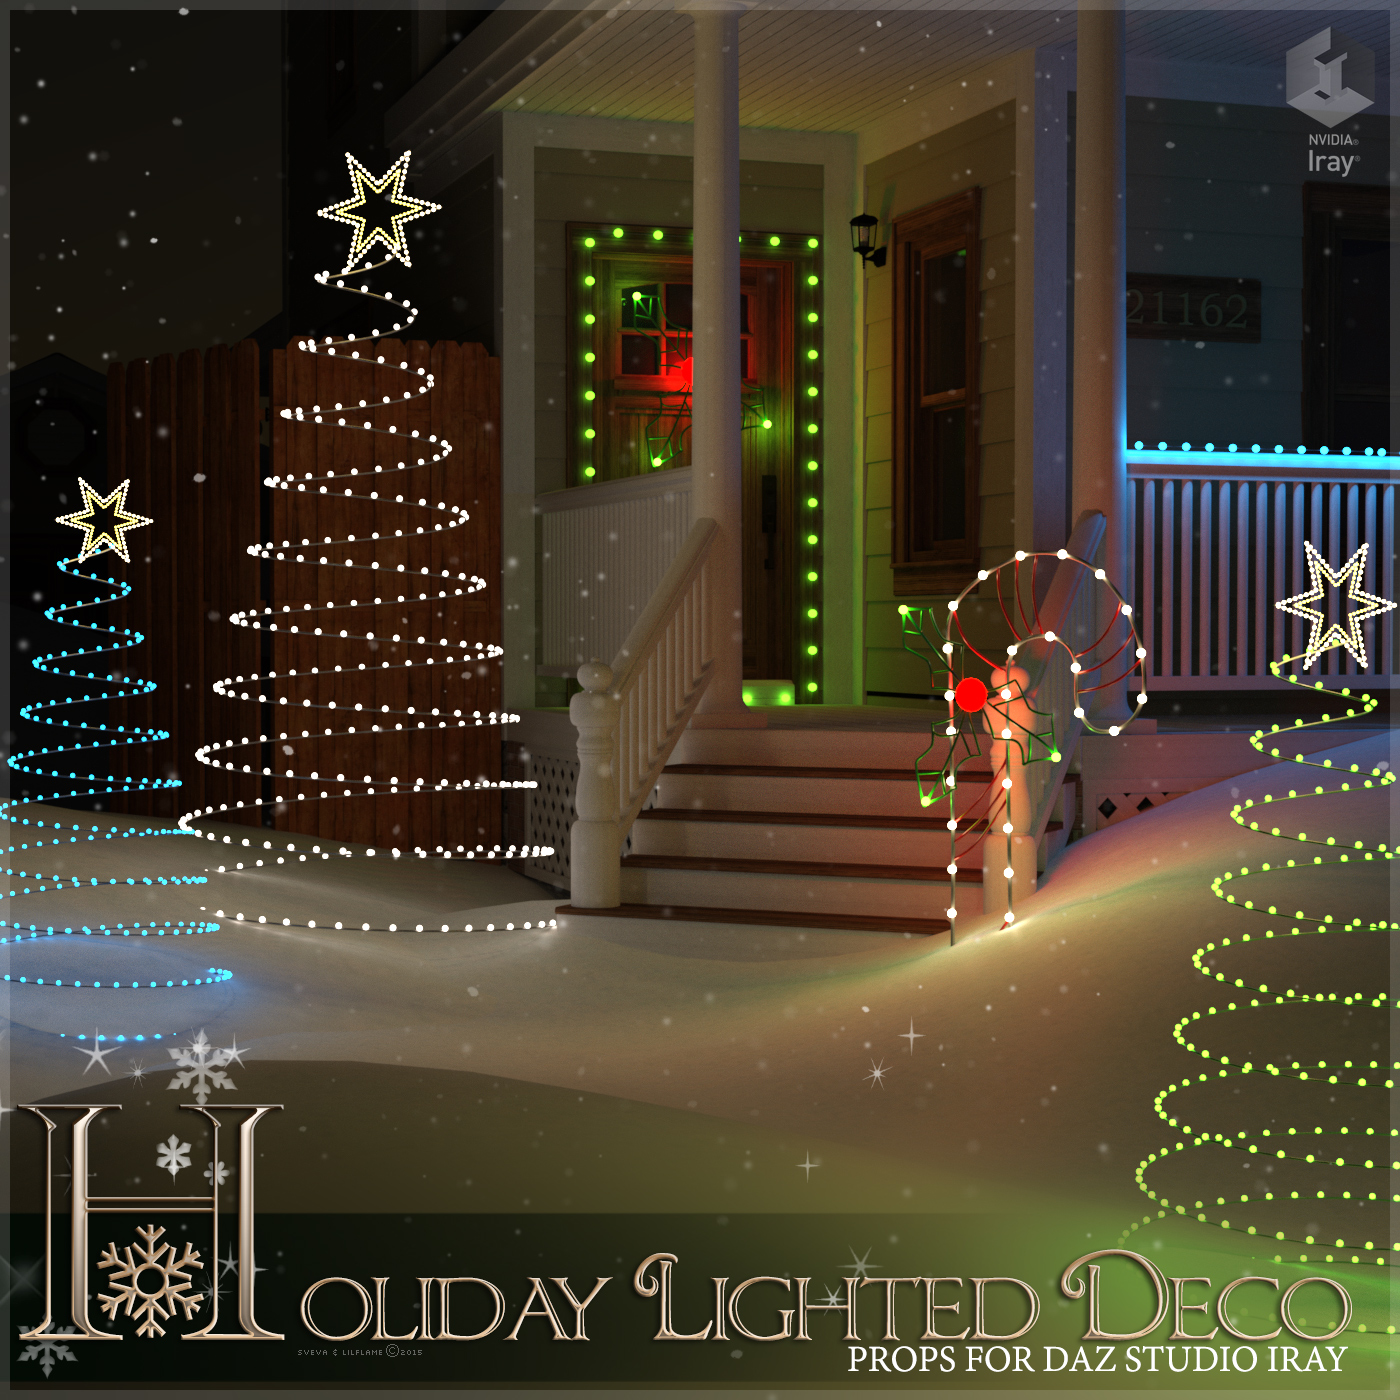 Holiday Lighted Deco